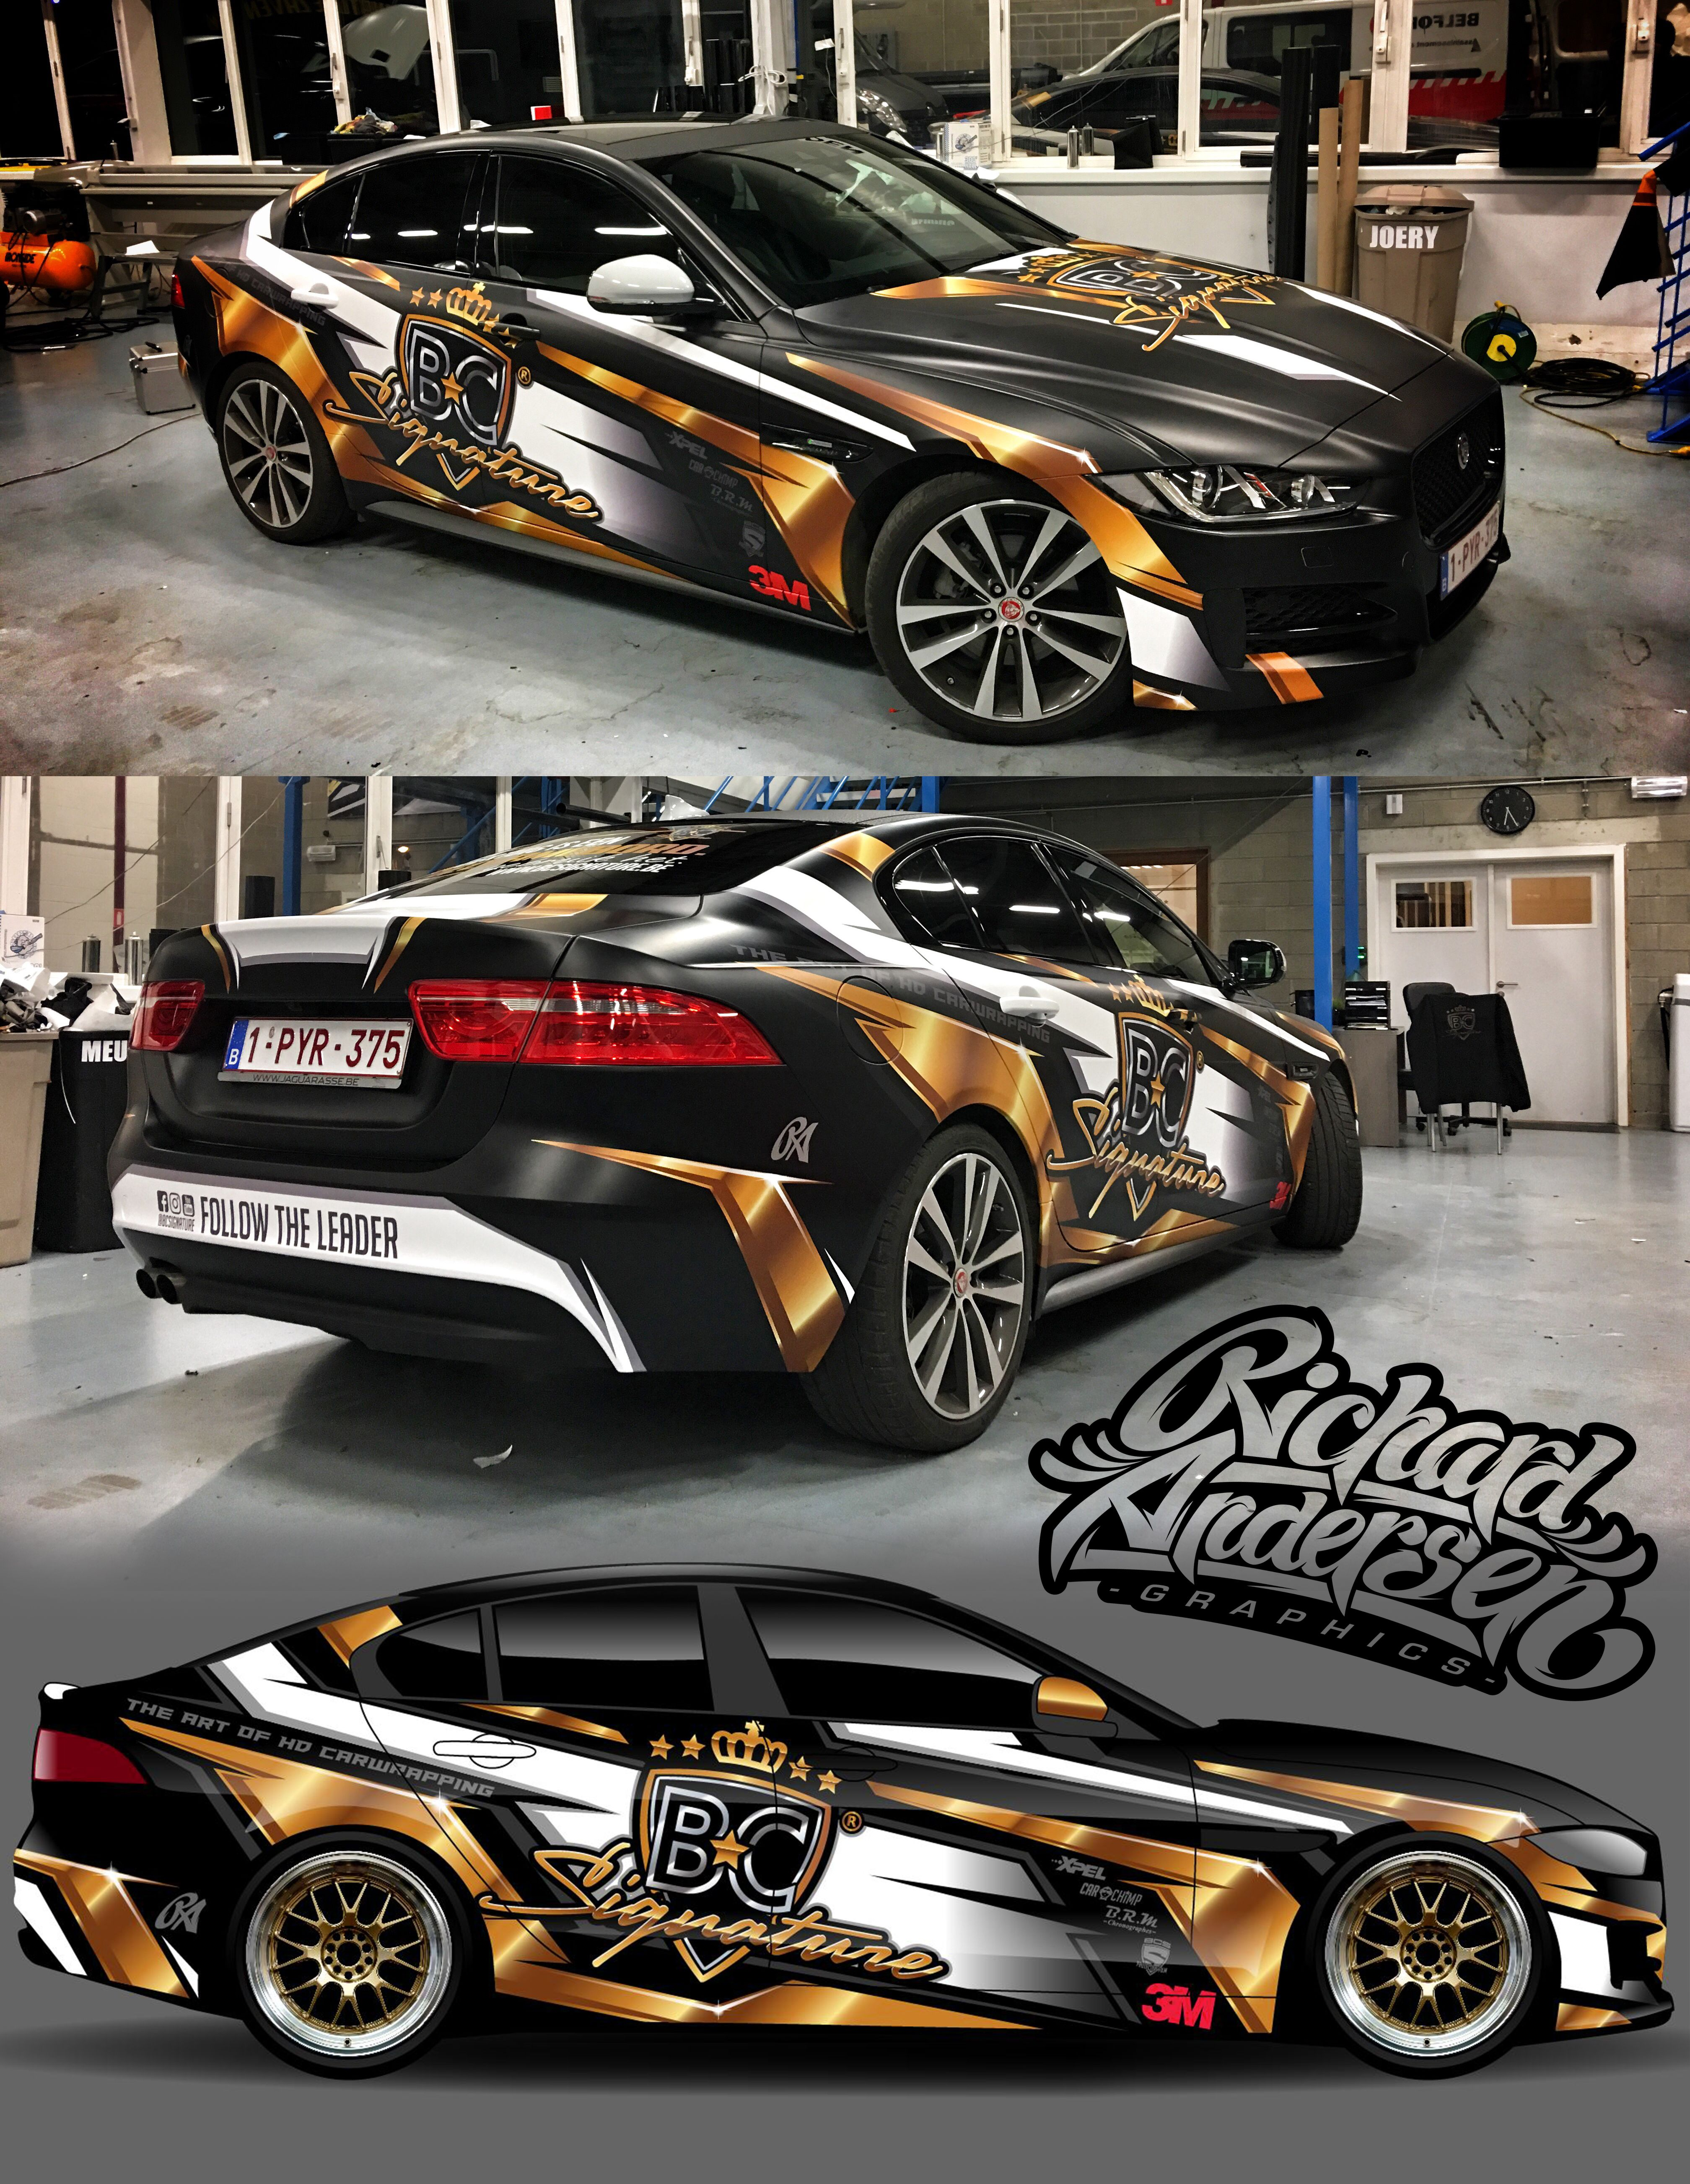 Just Some Of My Favorite Wraps I Have Done And Some Fun Ones - Car sticker designdistributors of discount car stickers designsm car